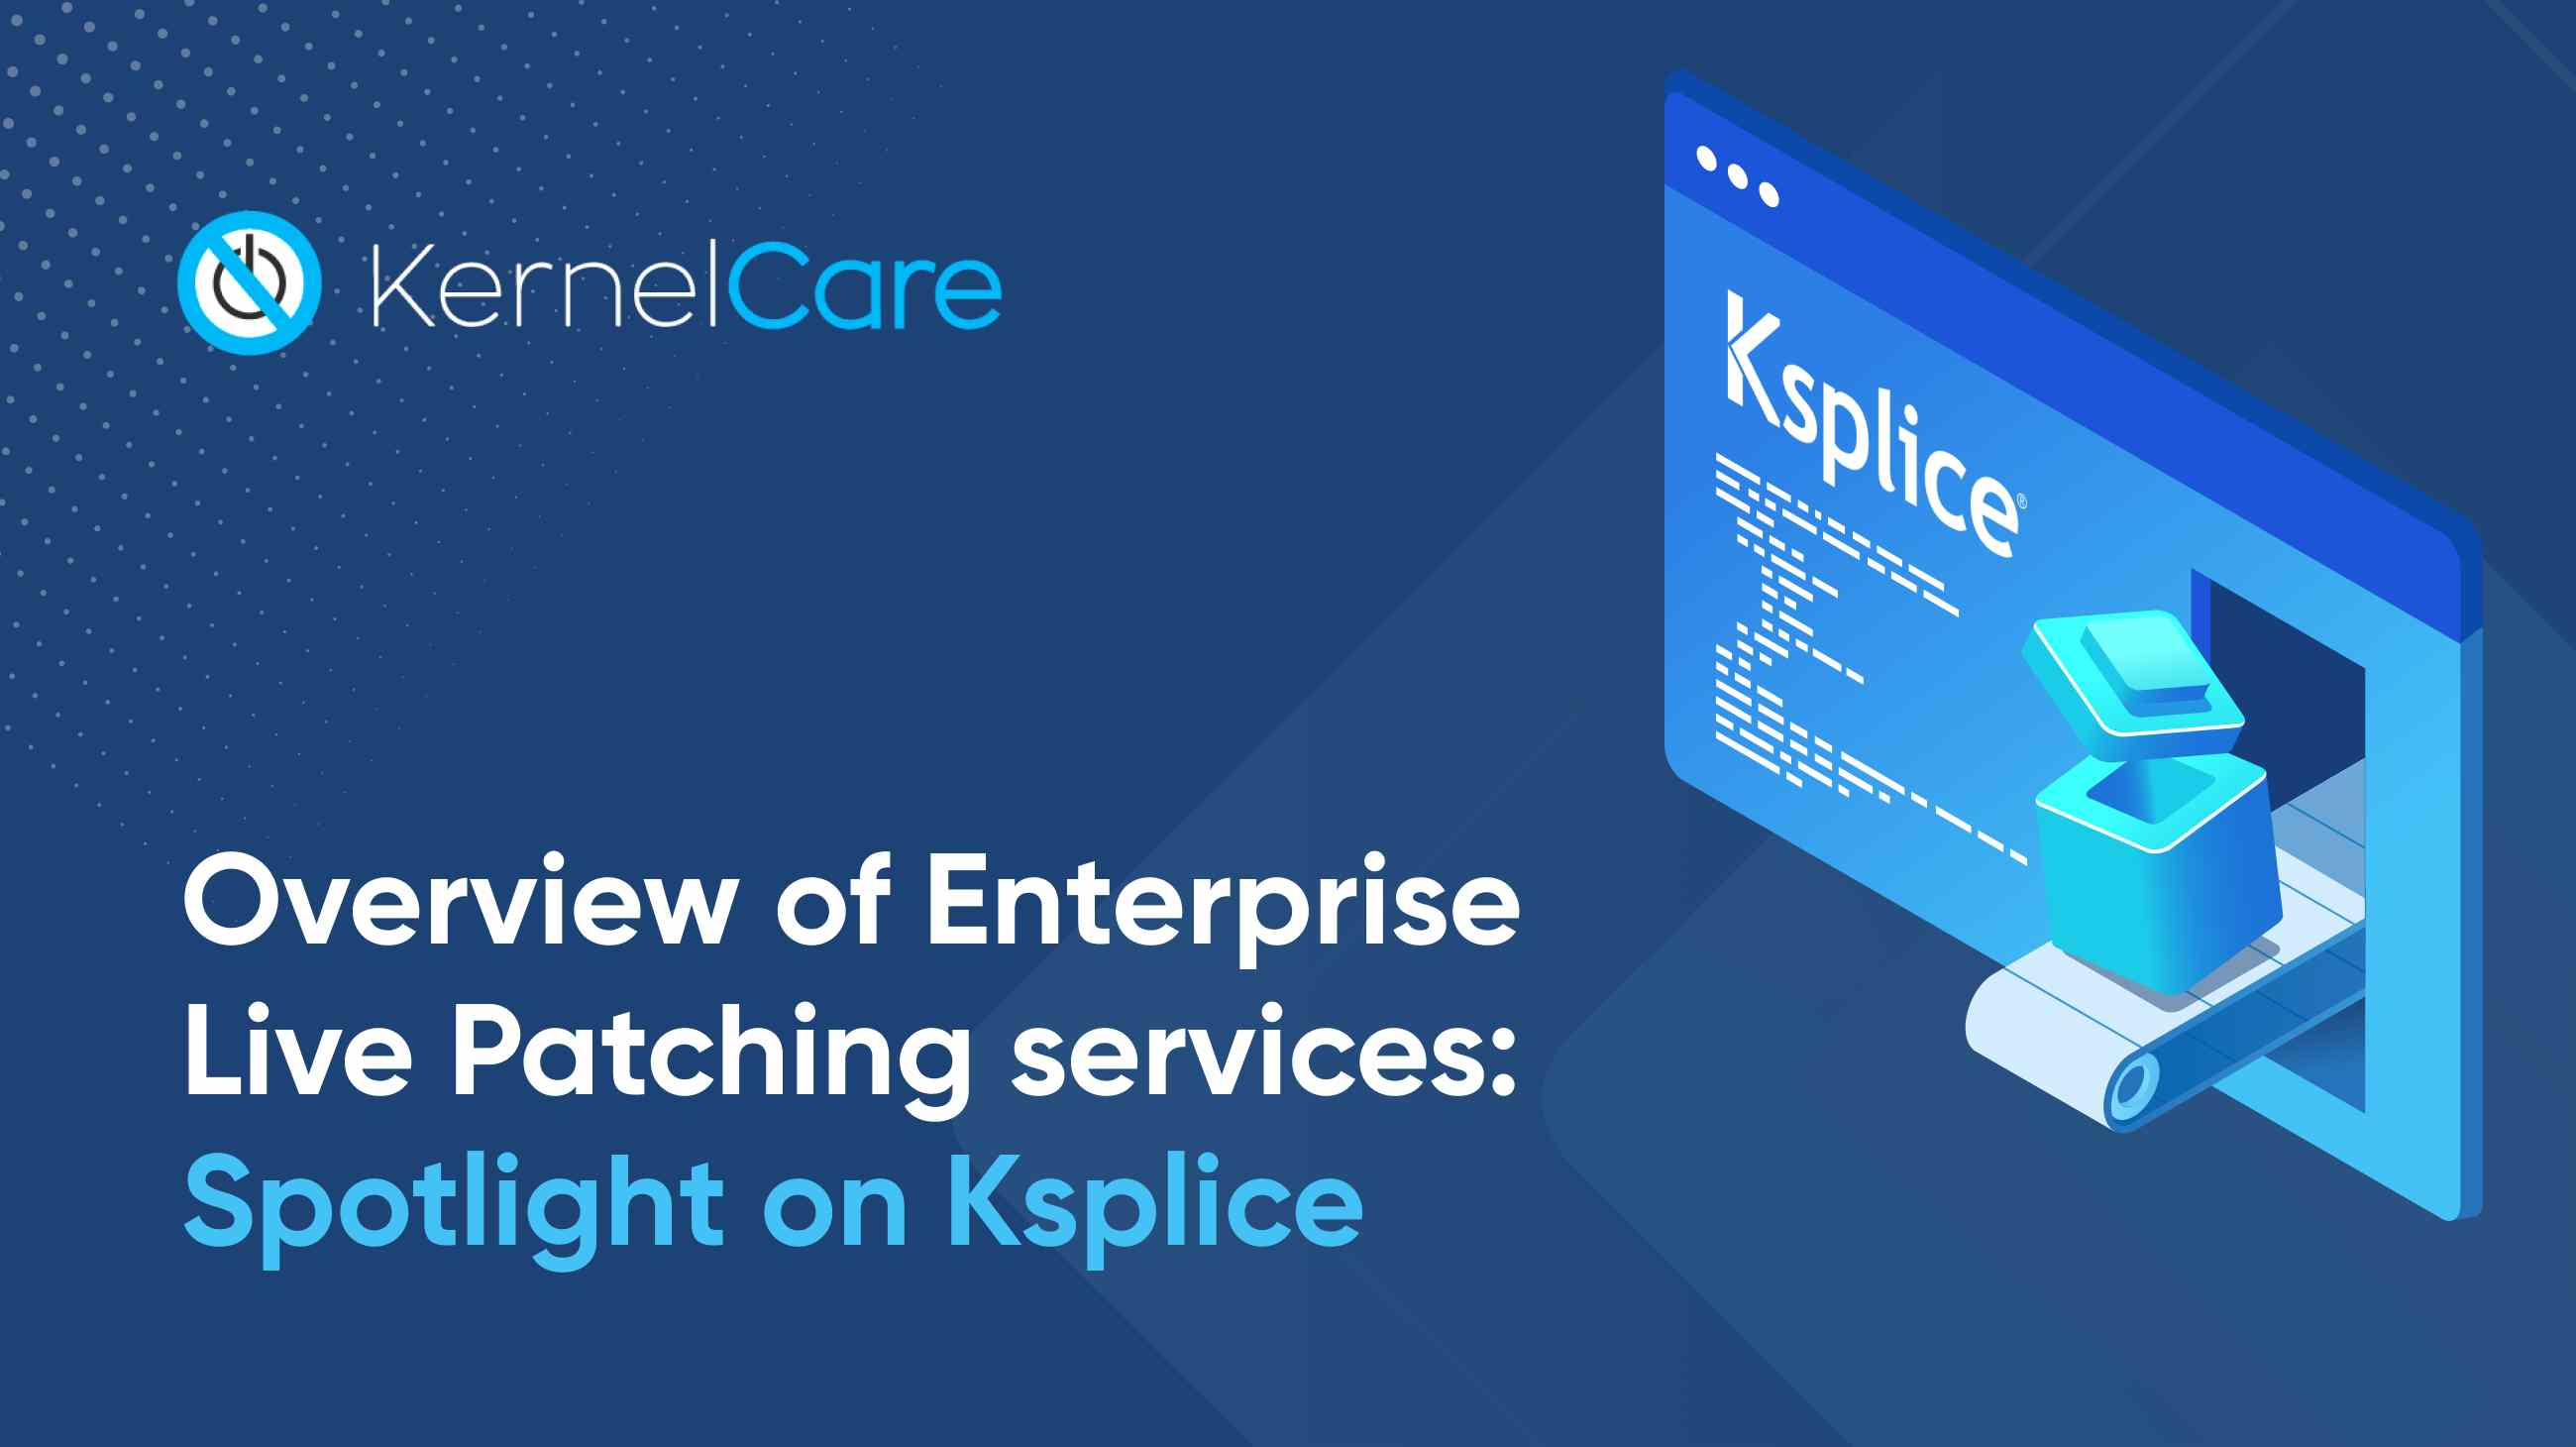 Overview of Enterprise Live Patching services: Spotlight on Ksplice